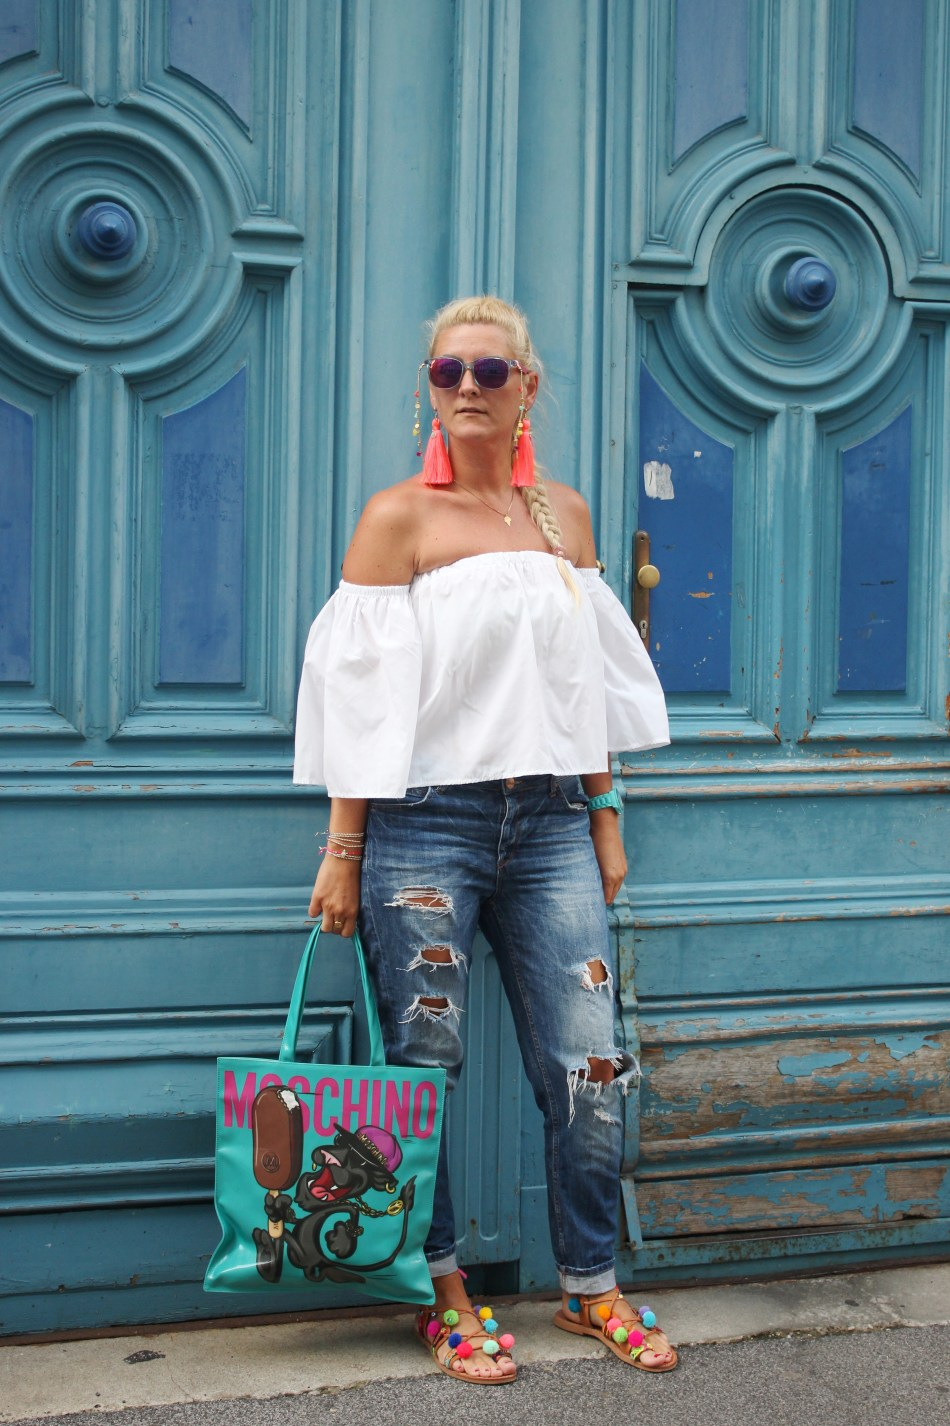 Magnum-Moschino-MagnumxMoschino-Bag-Sommerlook-Tasche-Jeremy-Scott-Pompom-Sandals-Tassels-offshoulder-Blouse-carrieslifestyle-Tamara-Prutsch